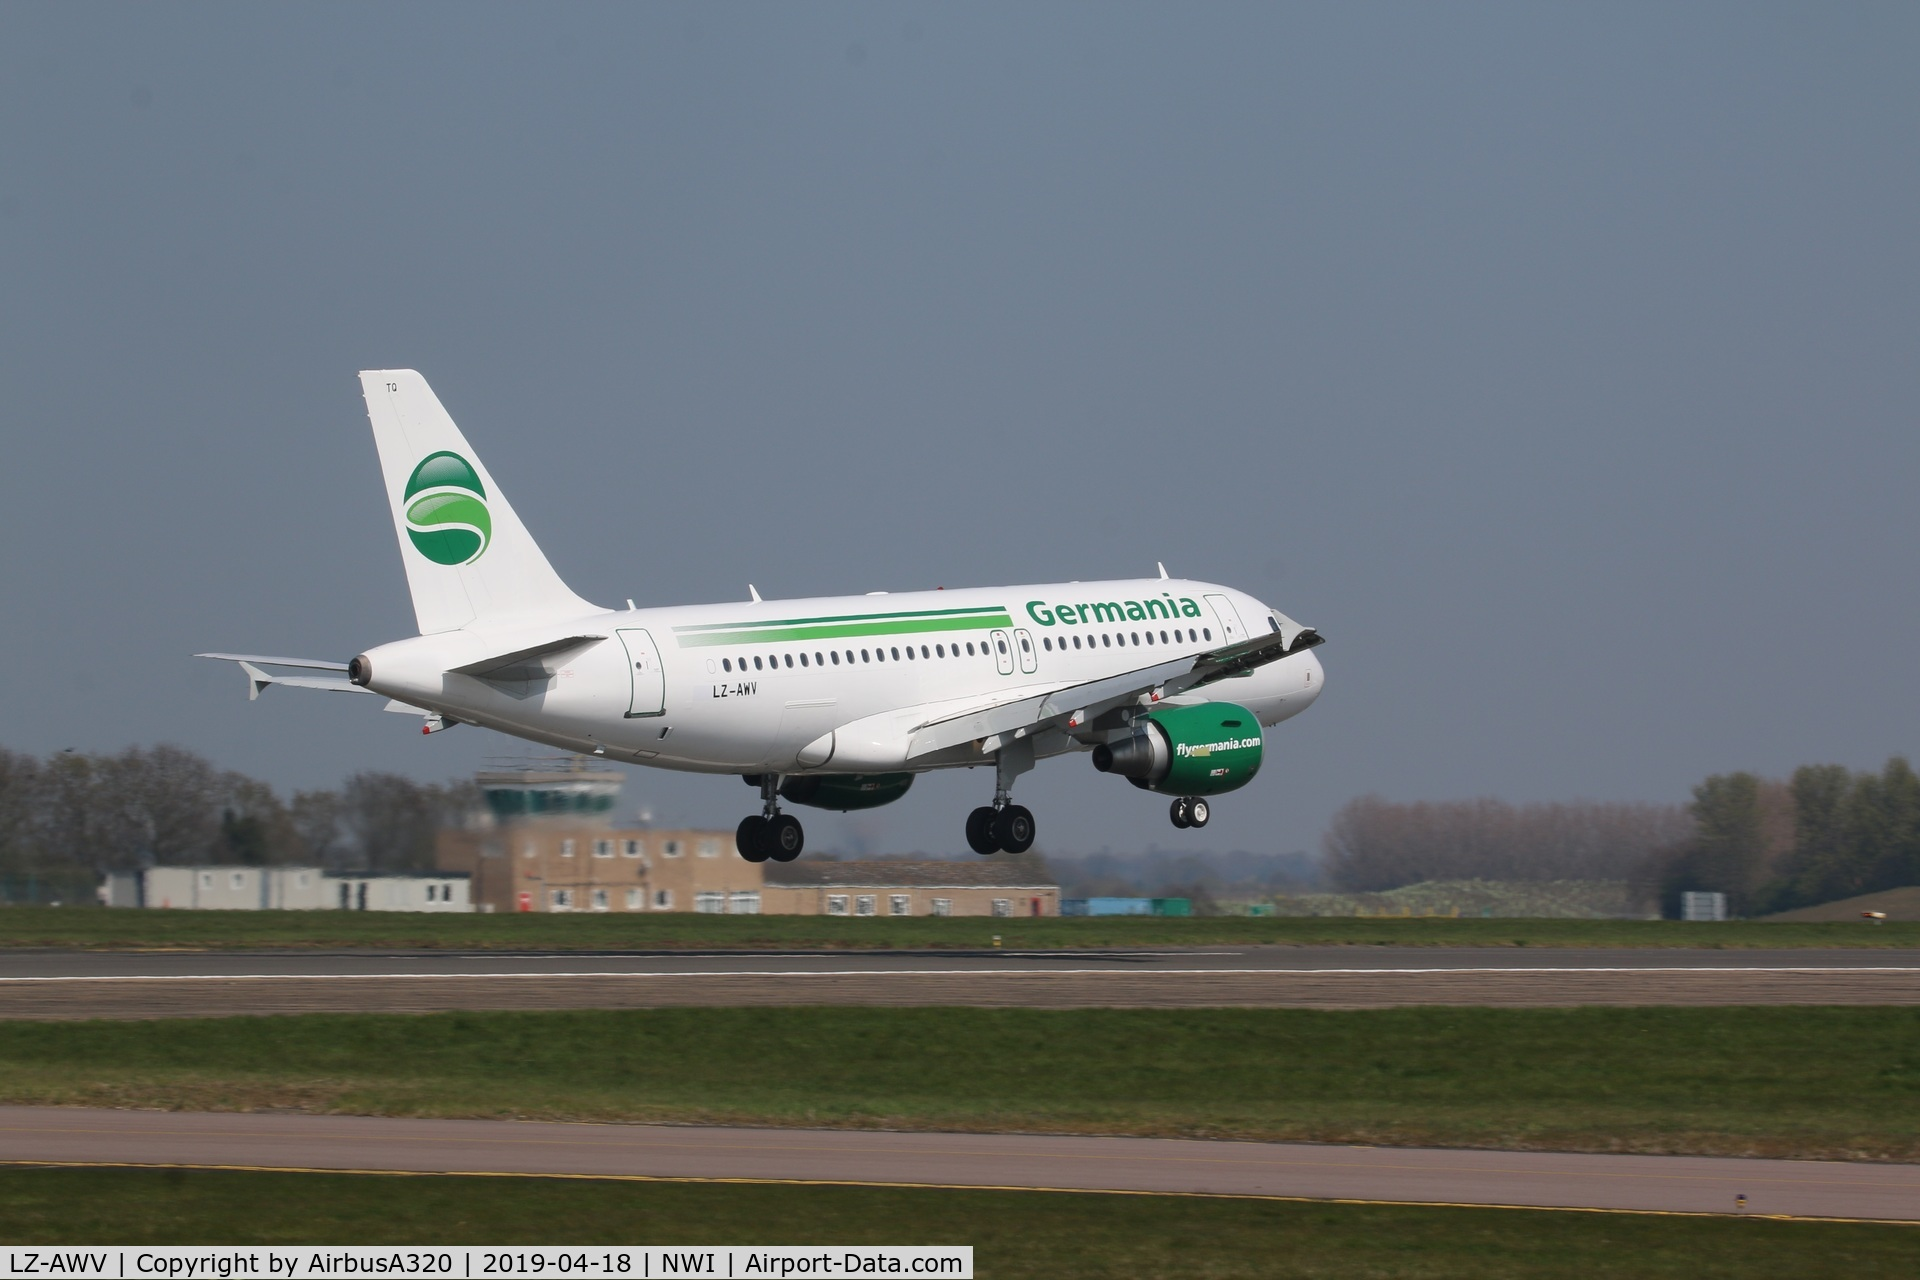 LZ-AWV, 2008 Airbus A319-100 C/N 3403, Landing on Rwy 09 at NWI